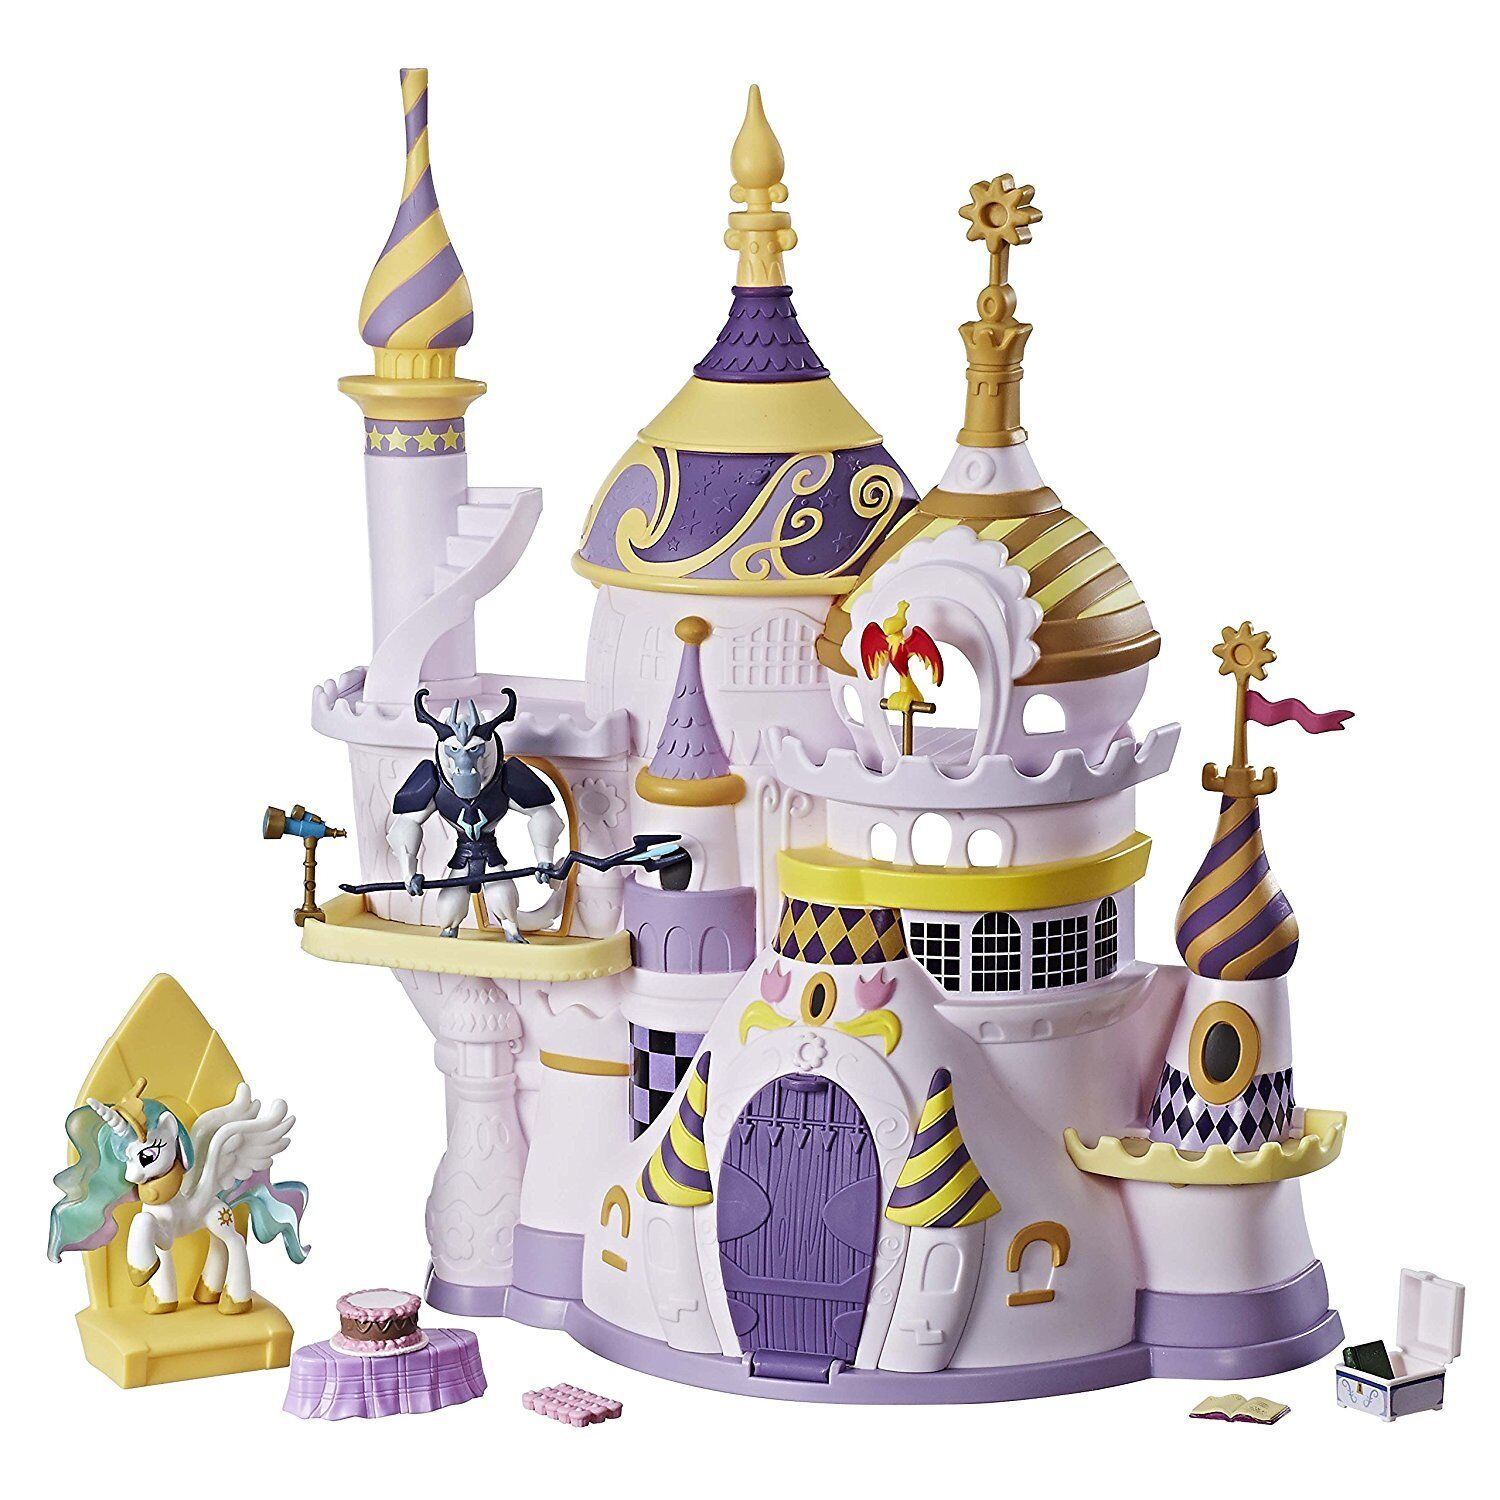 Canterlot Castle Playset My Little Pony Friendship is Magic Storm King Celestia